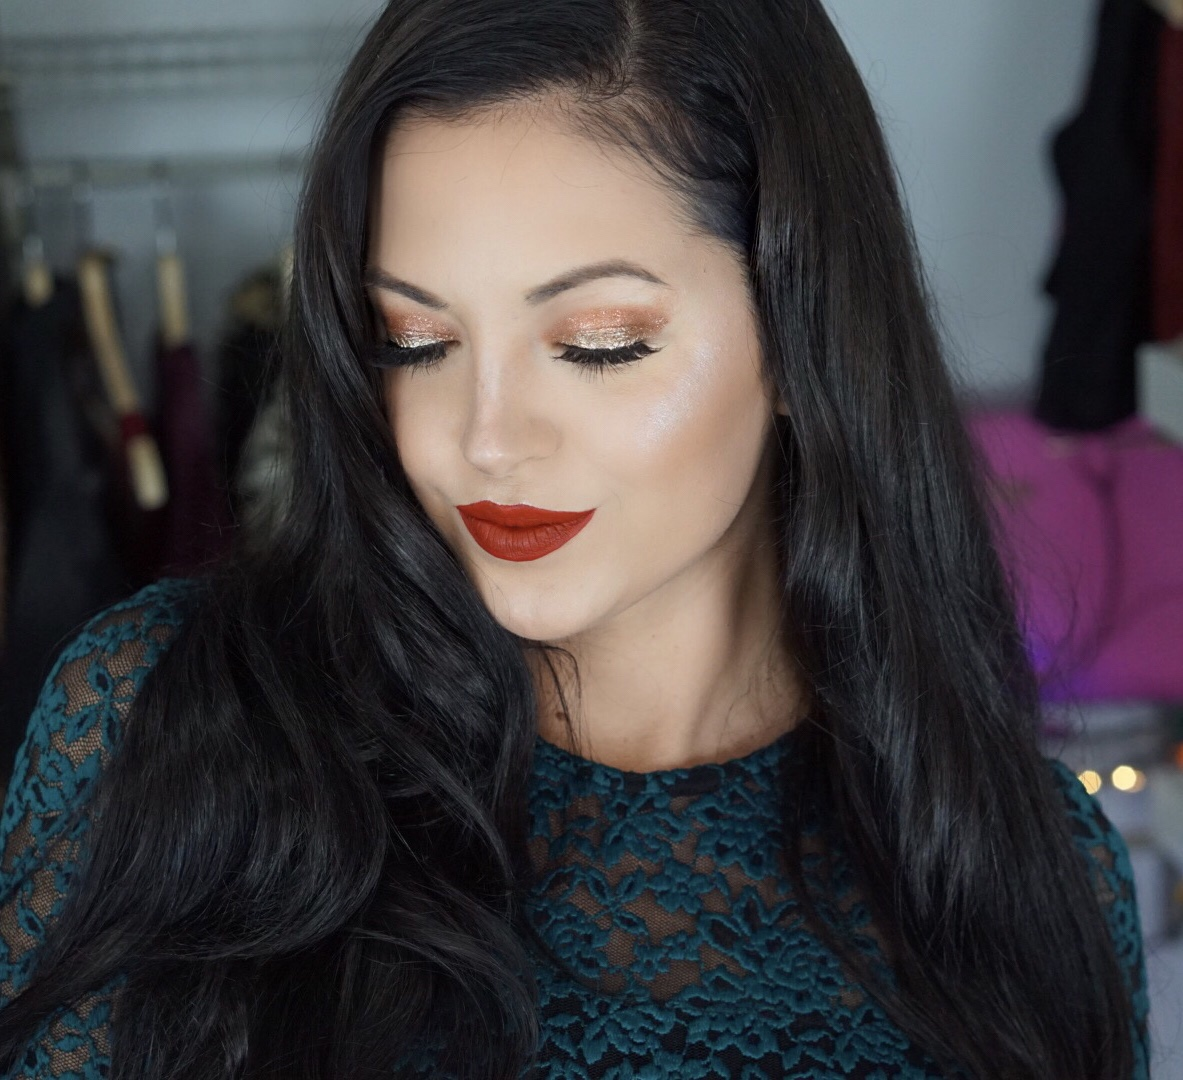 Glam Holiday Makeup Using Products $15 or Less